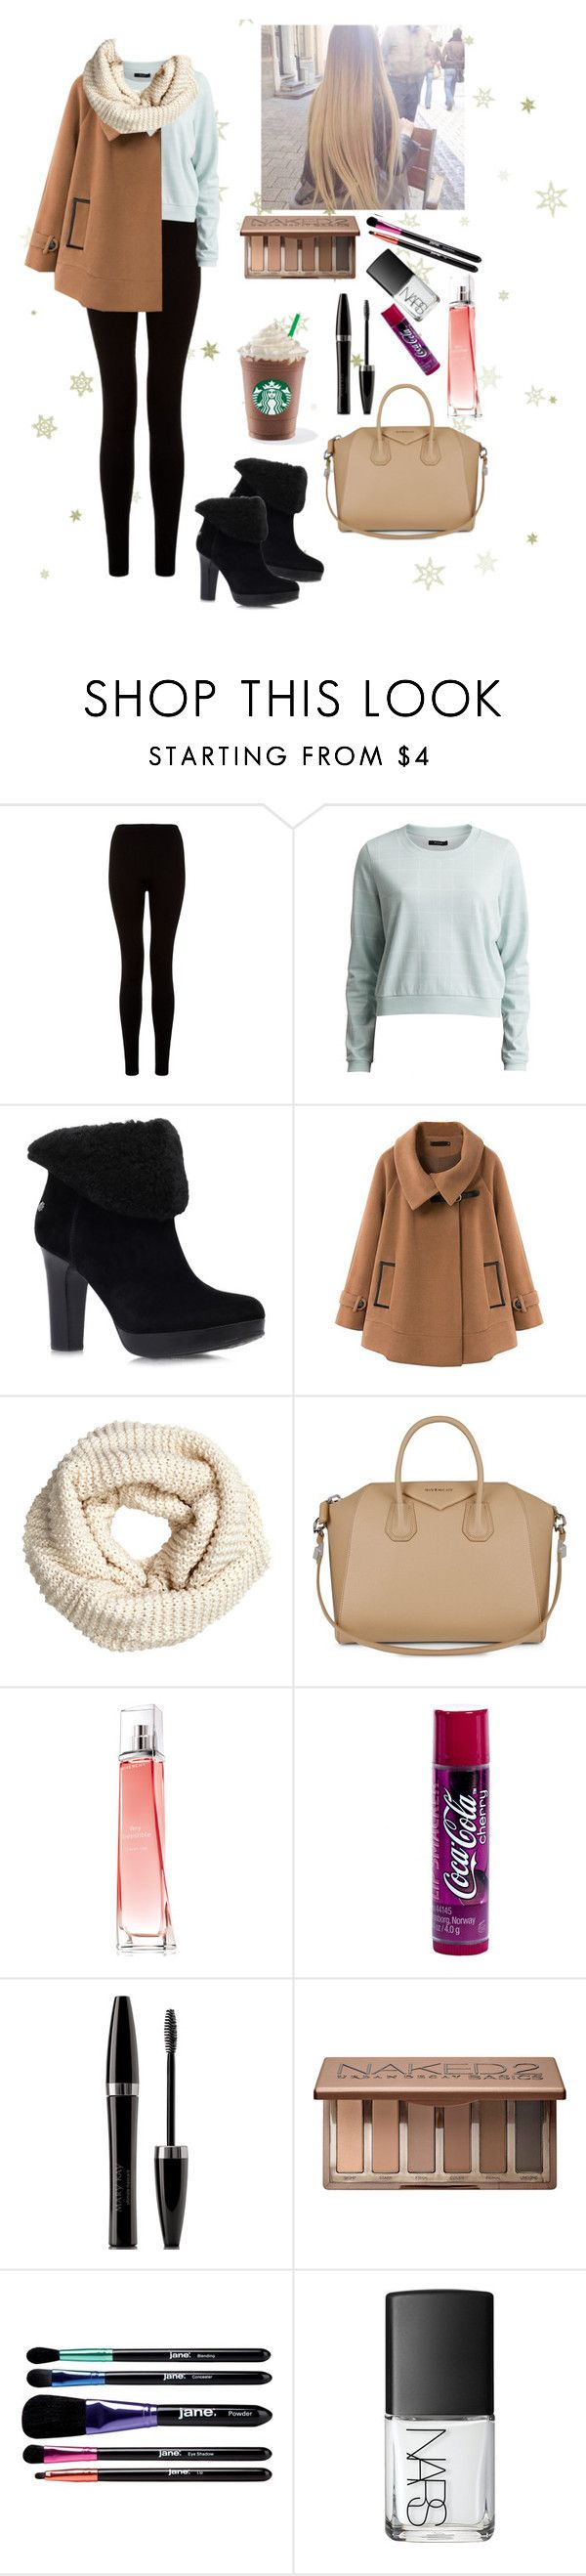 """It's just winter in Russia"" by eliza-redkina ❤ liked on Polyvore featuring VILA, UGG Australia, Chicnova Fashion, H&M, Givenchy, Mary Kay, Urban Decay, jane, NARS Cosmetics and StreetStyle"